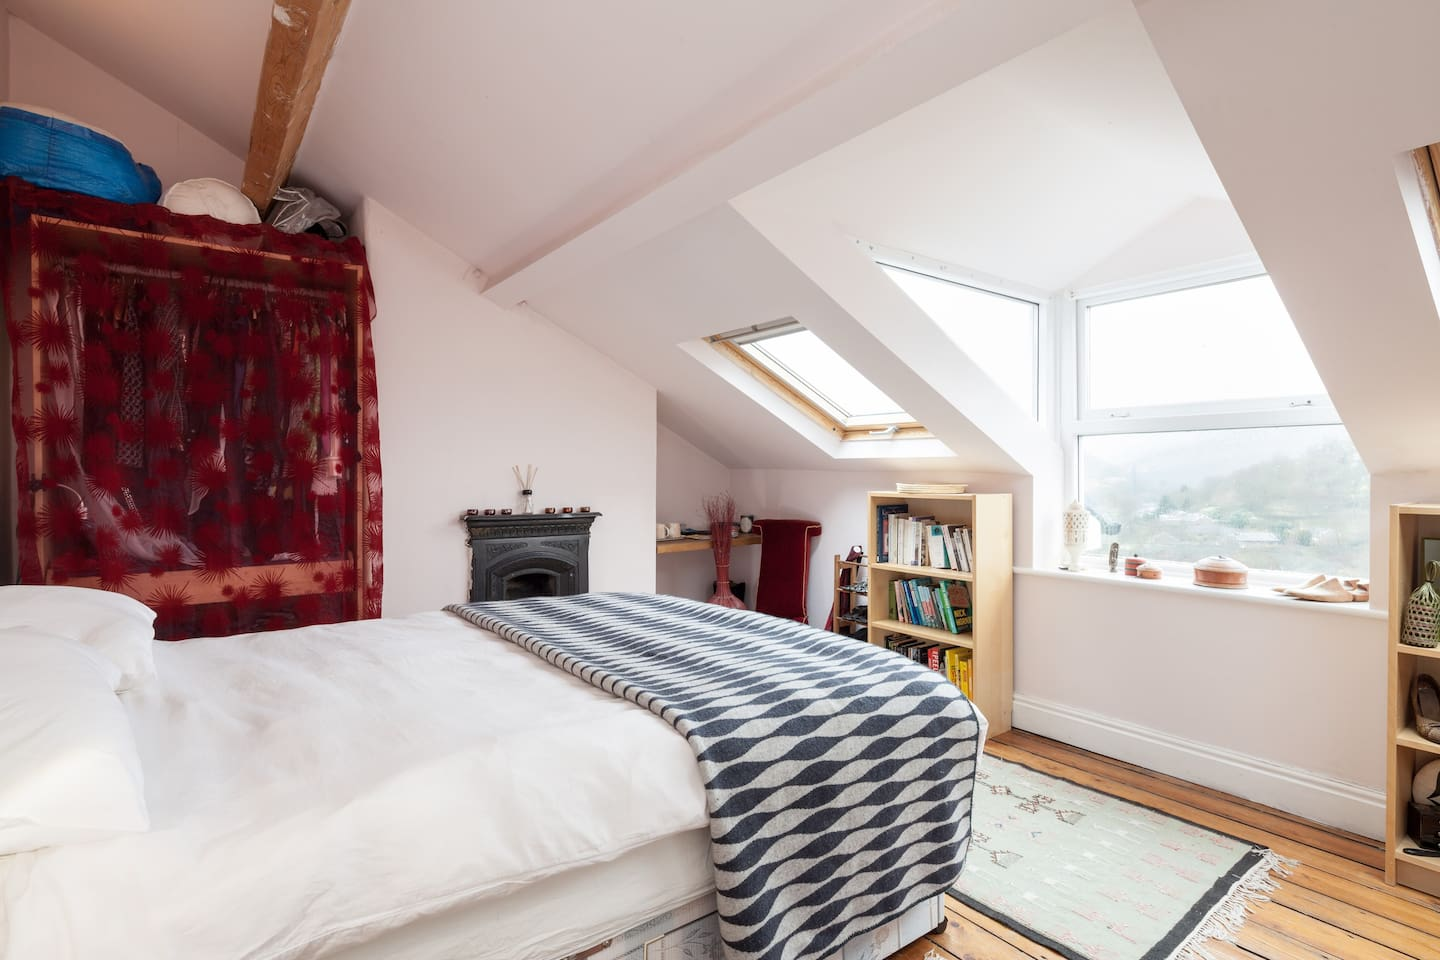 Attic bed with views over Calder Valley and Hebden Bridge